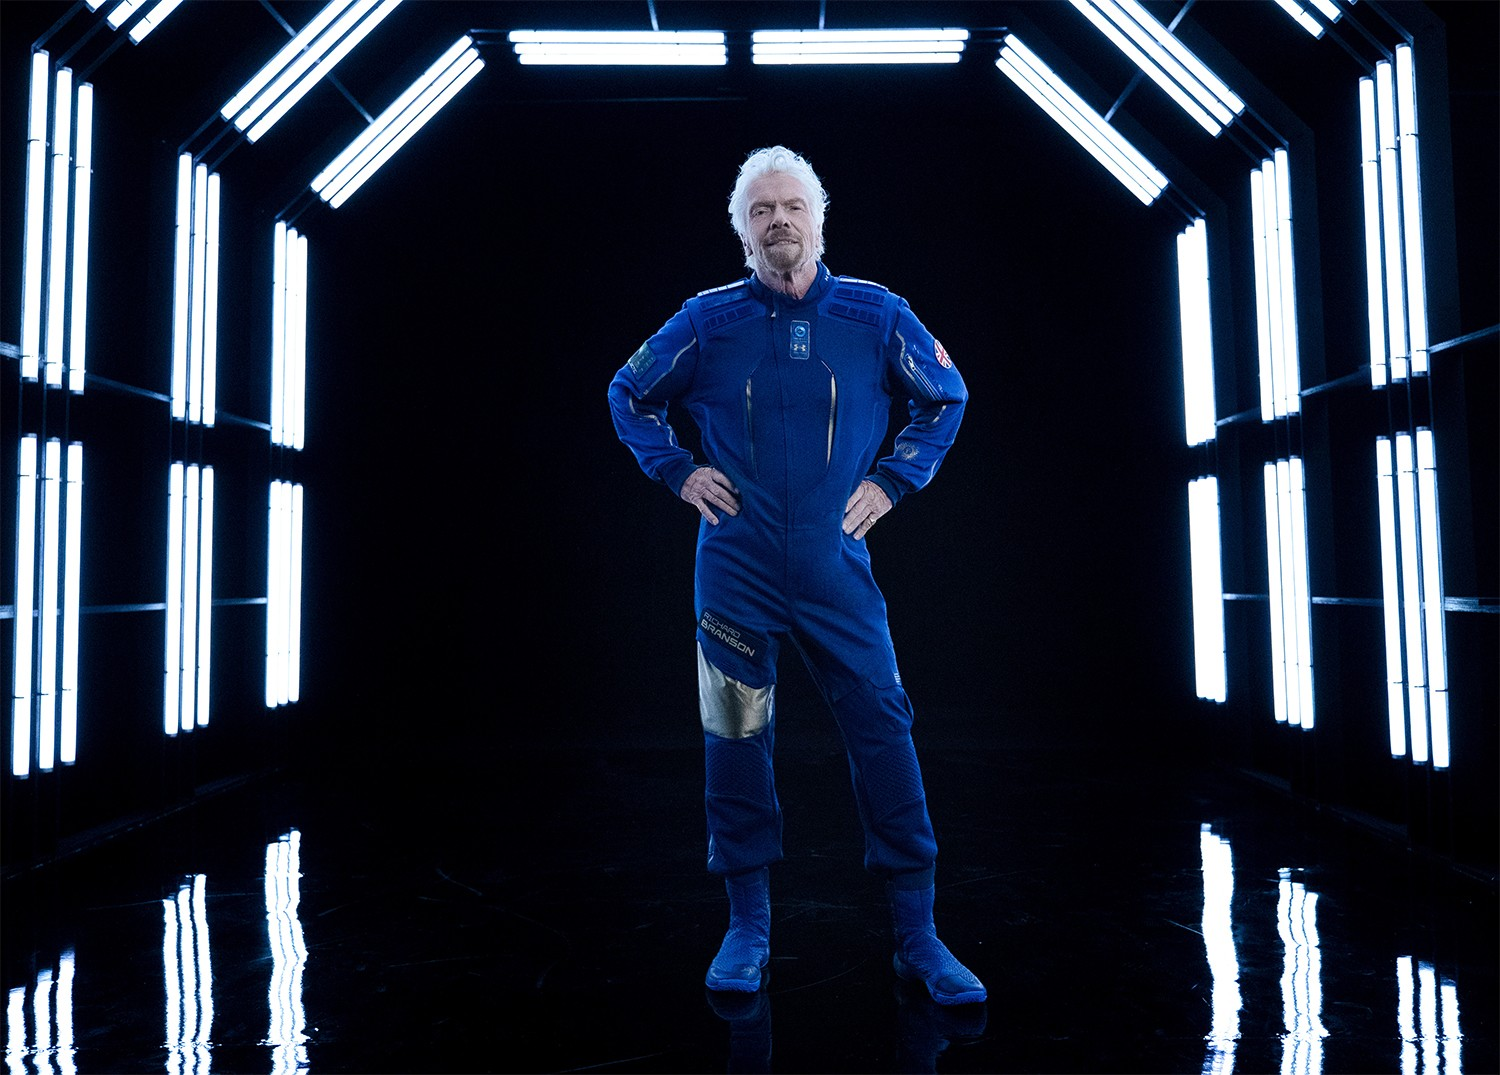 Virgin Galactic chairman Richard Branson models the company's new spacesuit, made in collaboration with Under Armour. Credit: Virgin Galactic